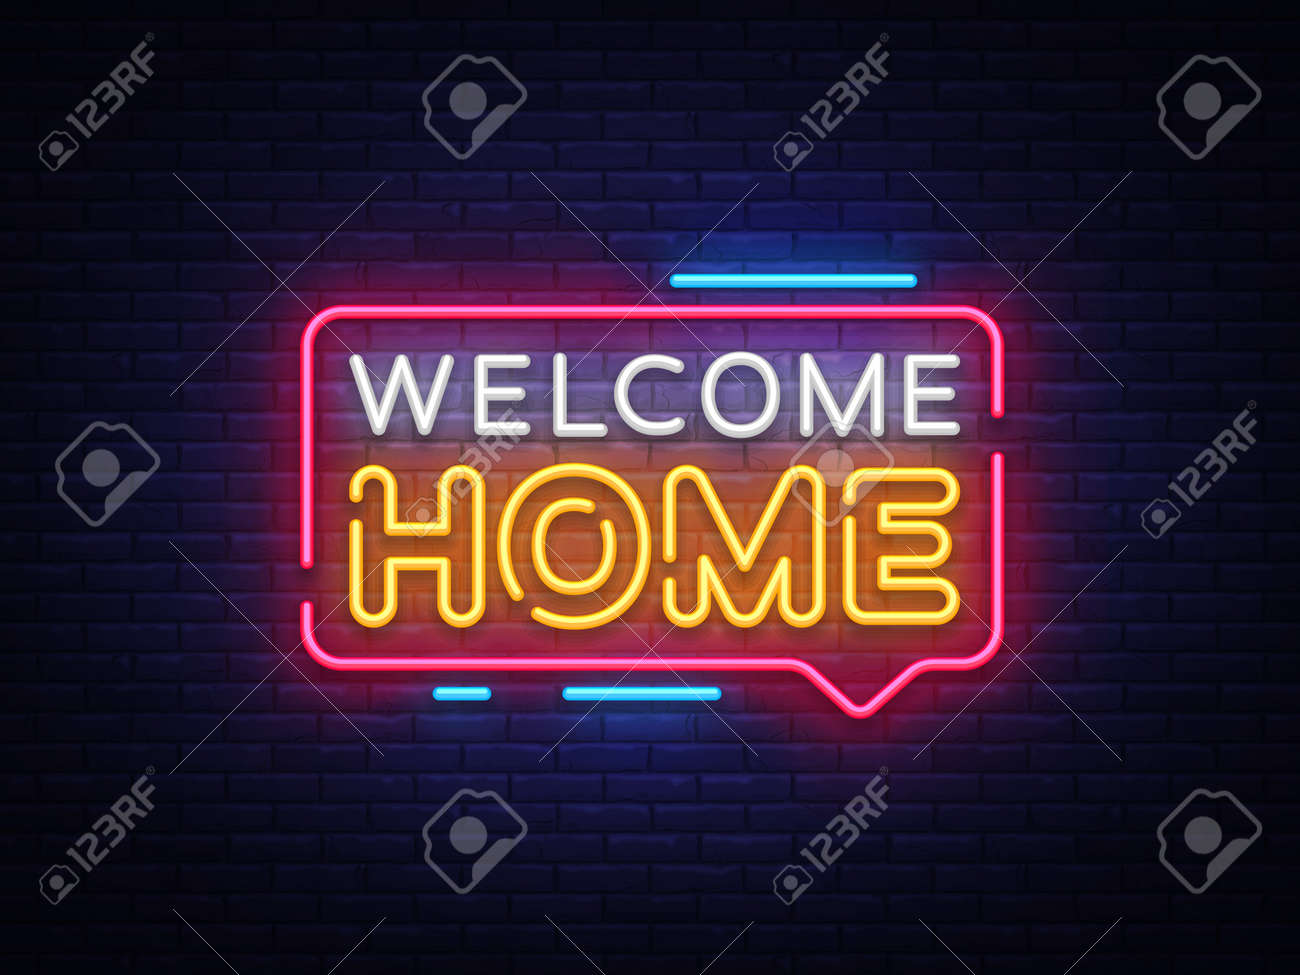 Welcome Home Neon Text Vector. Welcome Home neon sign, design template, modern trend design, night neon signboard, night bright advertising, light banner, light art. Vector illustration. - 109793379